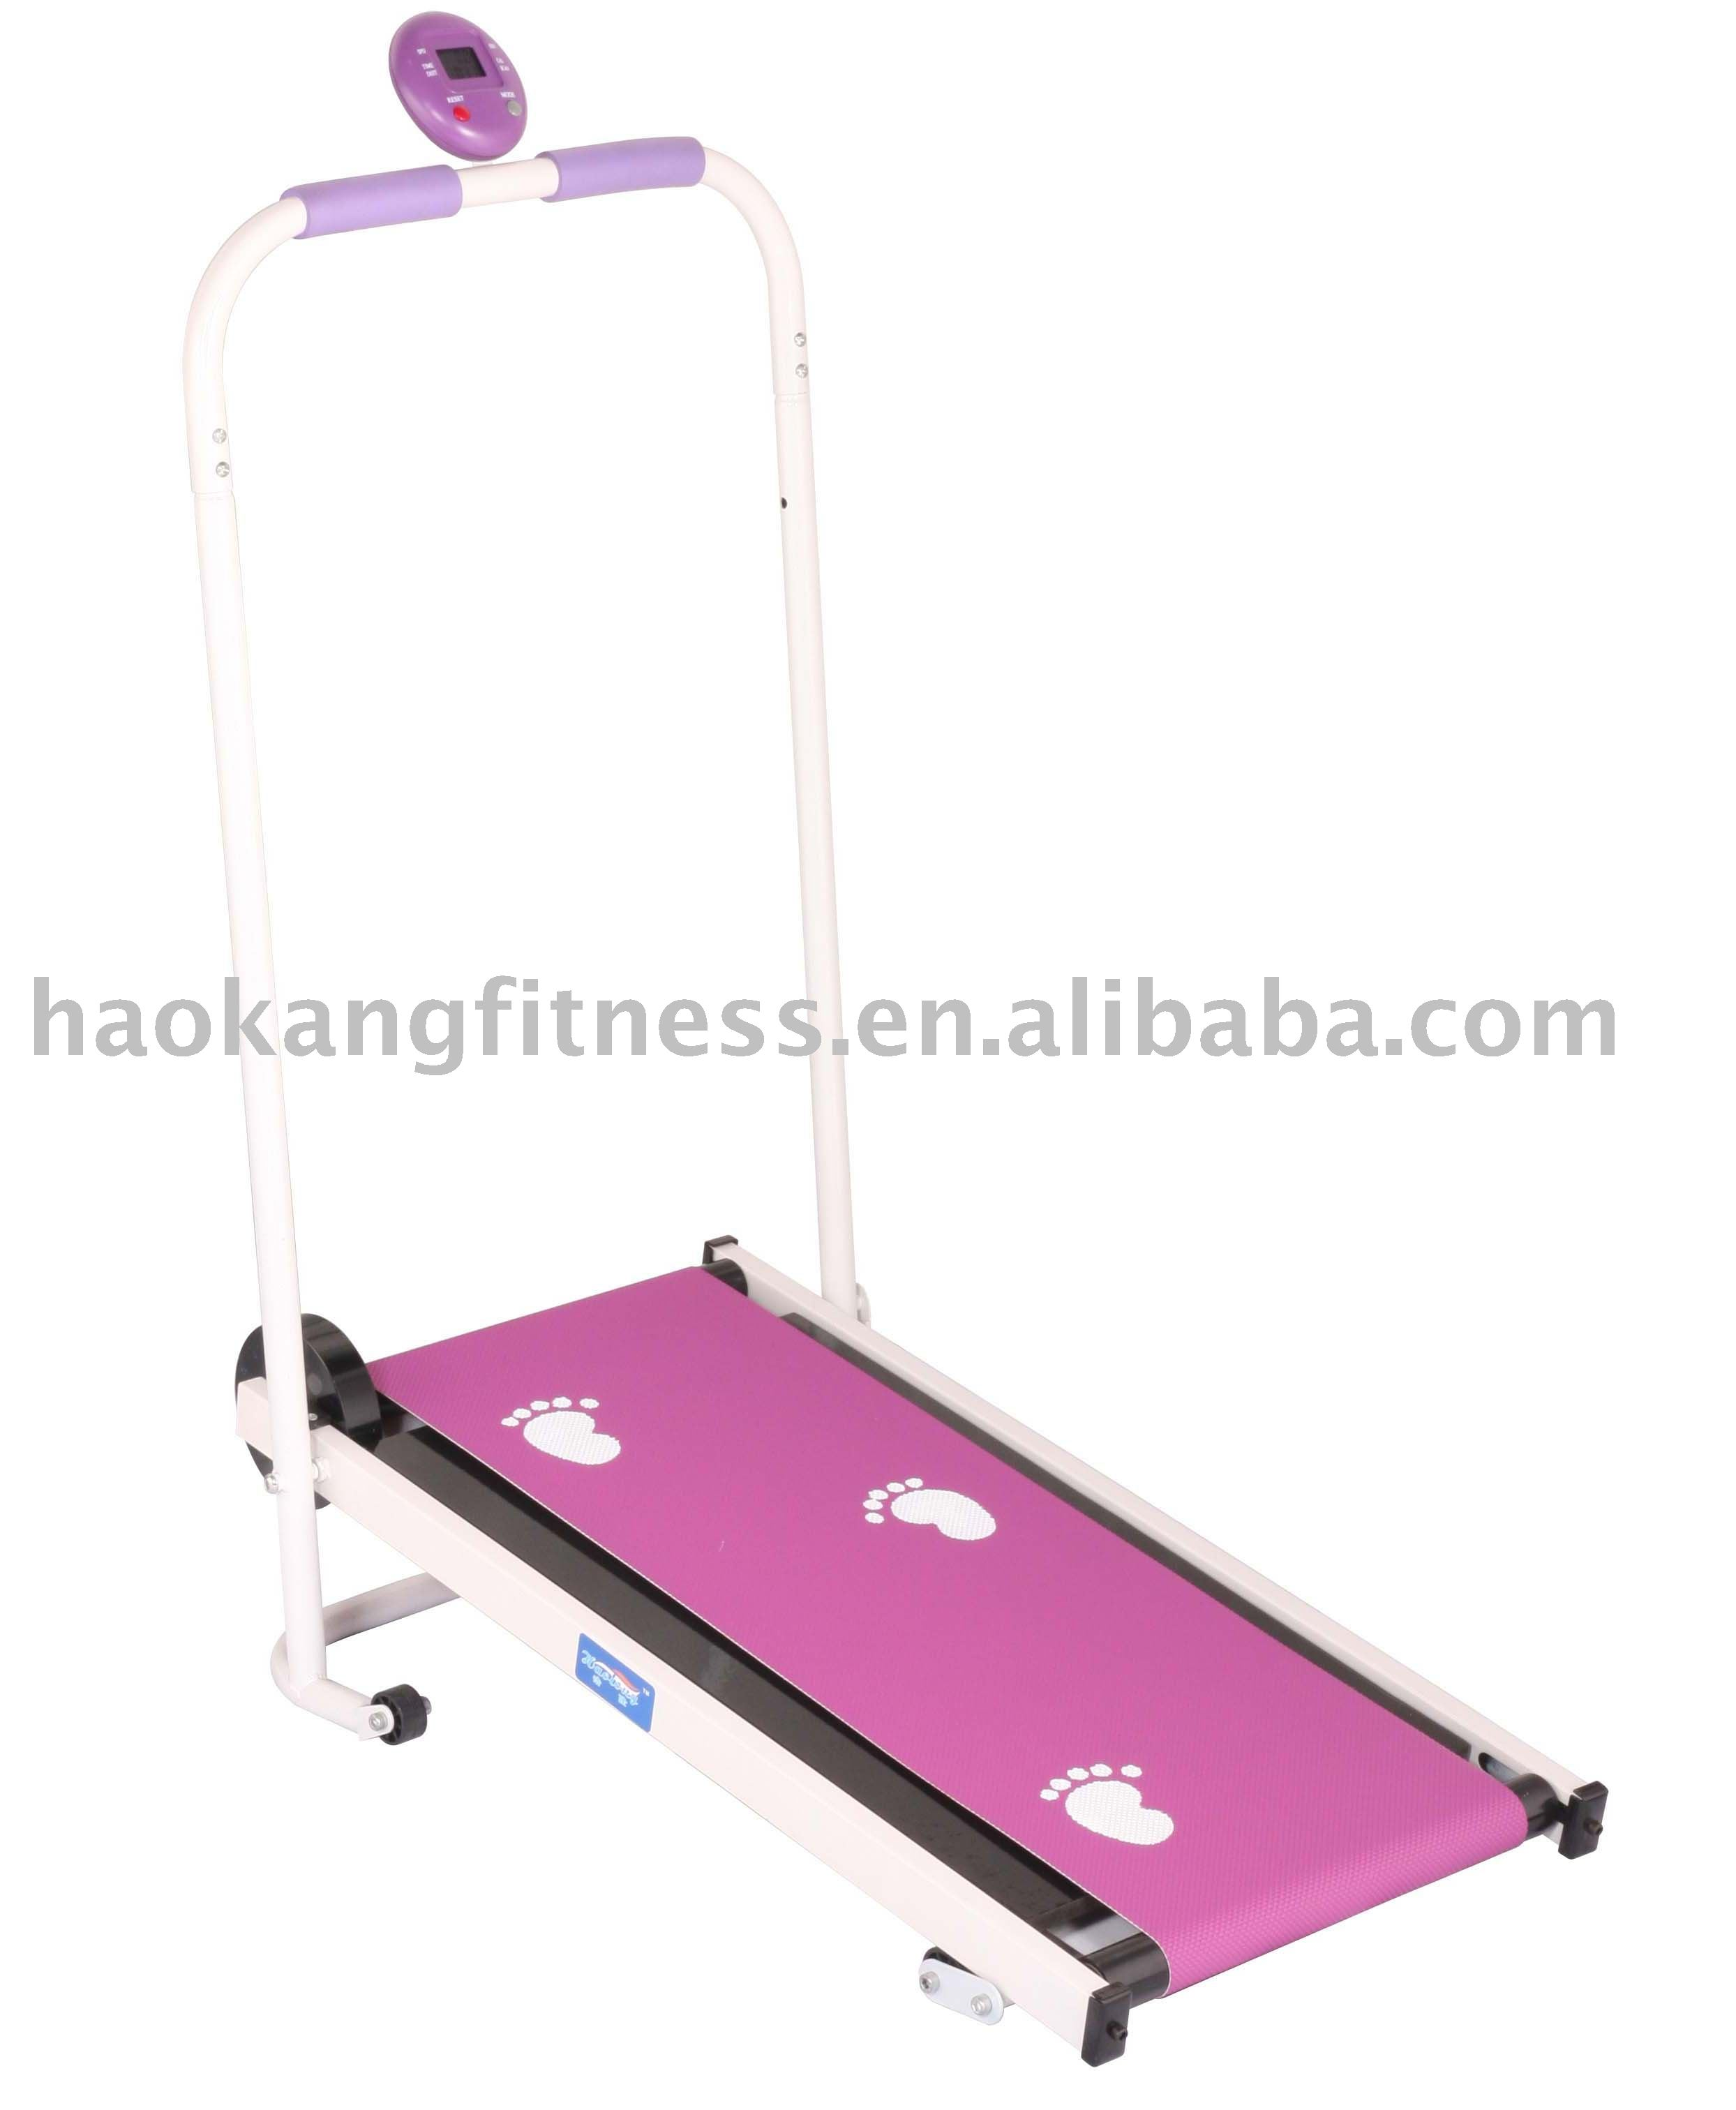 manual treadmill manual treadmill suppliers and manufacturers at manual treadmill manual treadmill suppliers and manufacturers at alibaba com